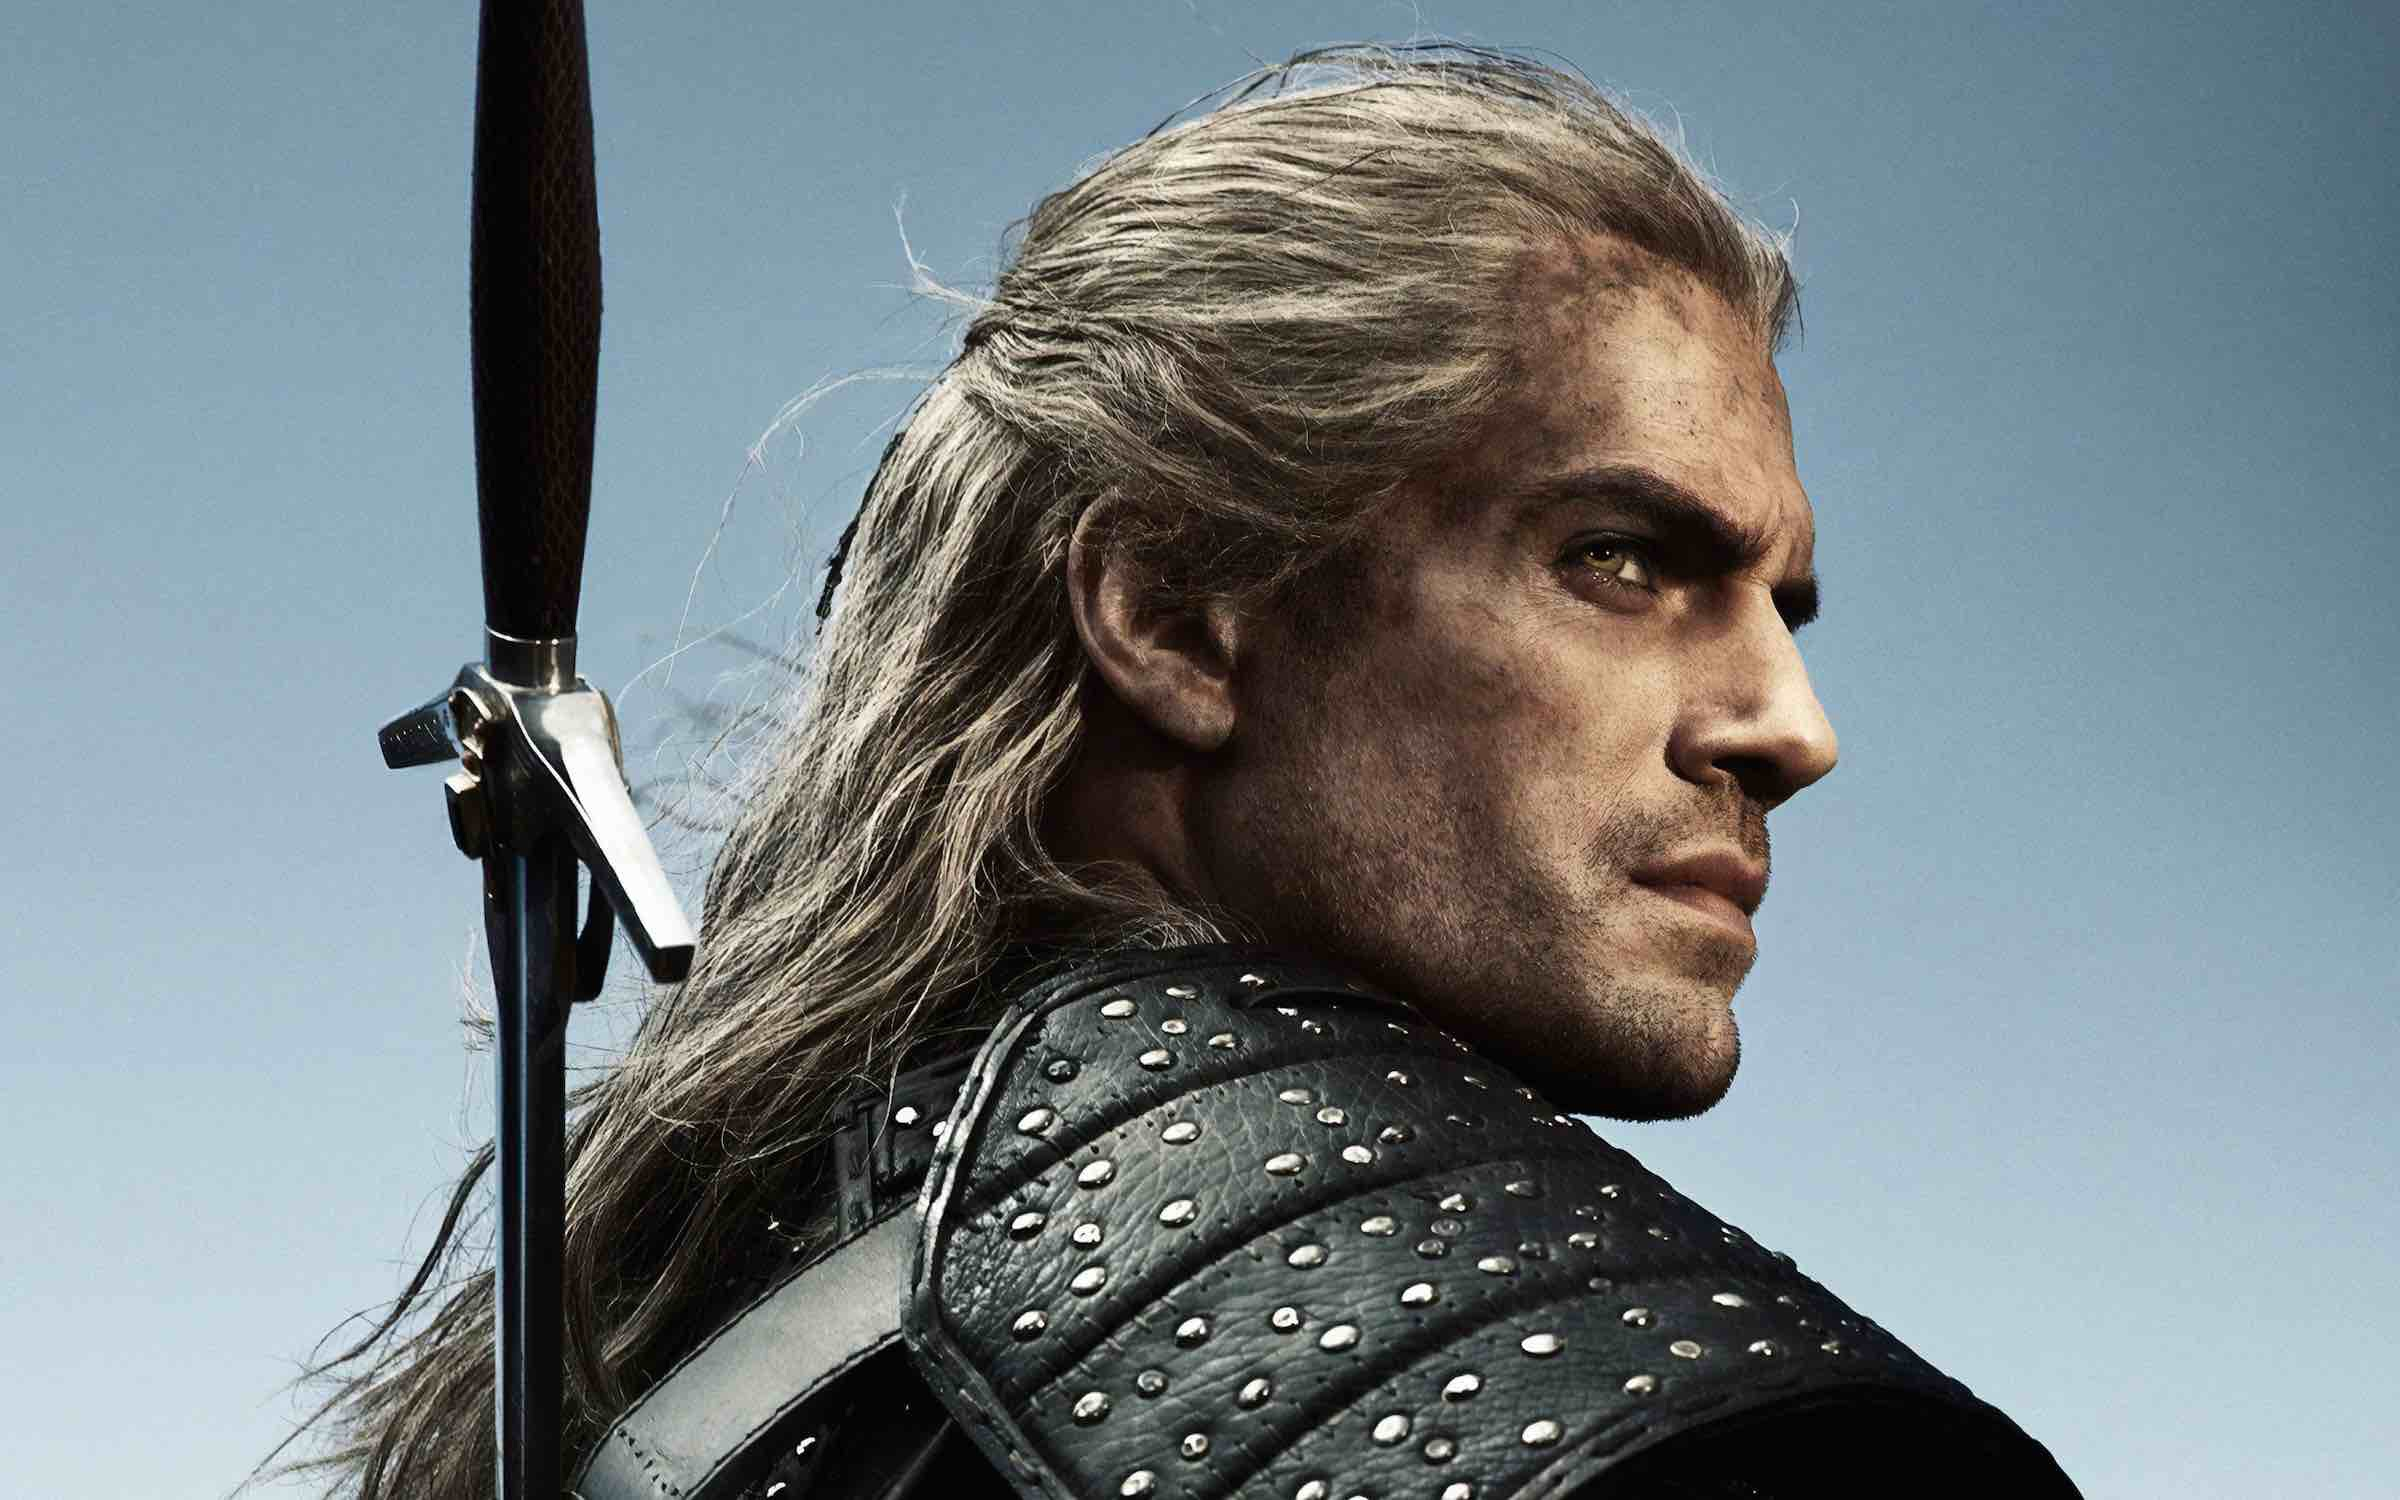 'The Witcher: Blood Origin' and More UK Projects are Greenlit + Casting